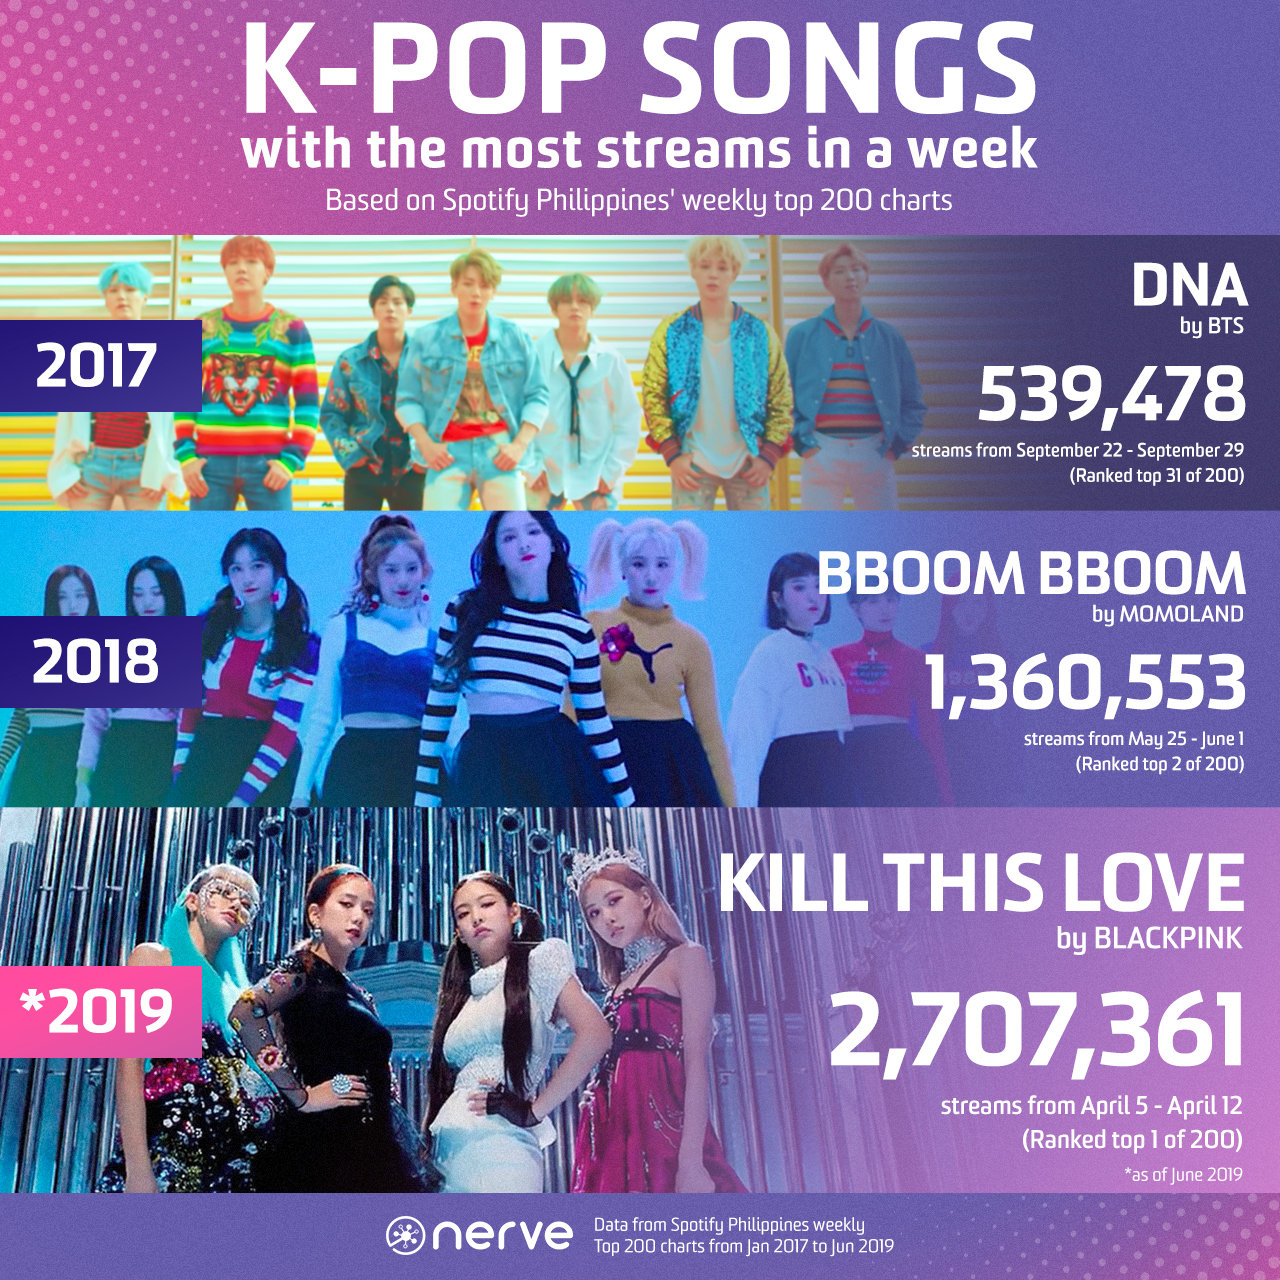 The 'bboom bboom' of K-pop in the Philippines